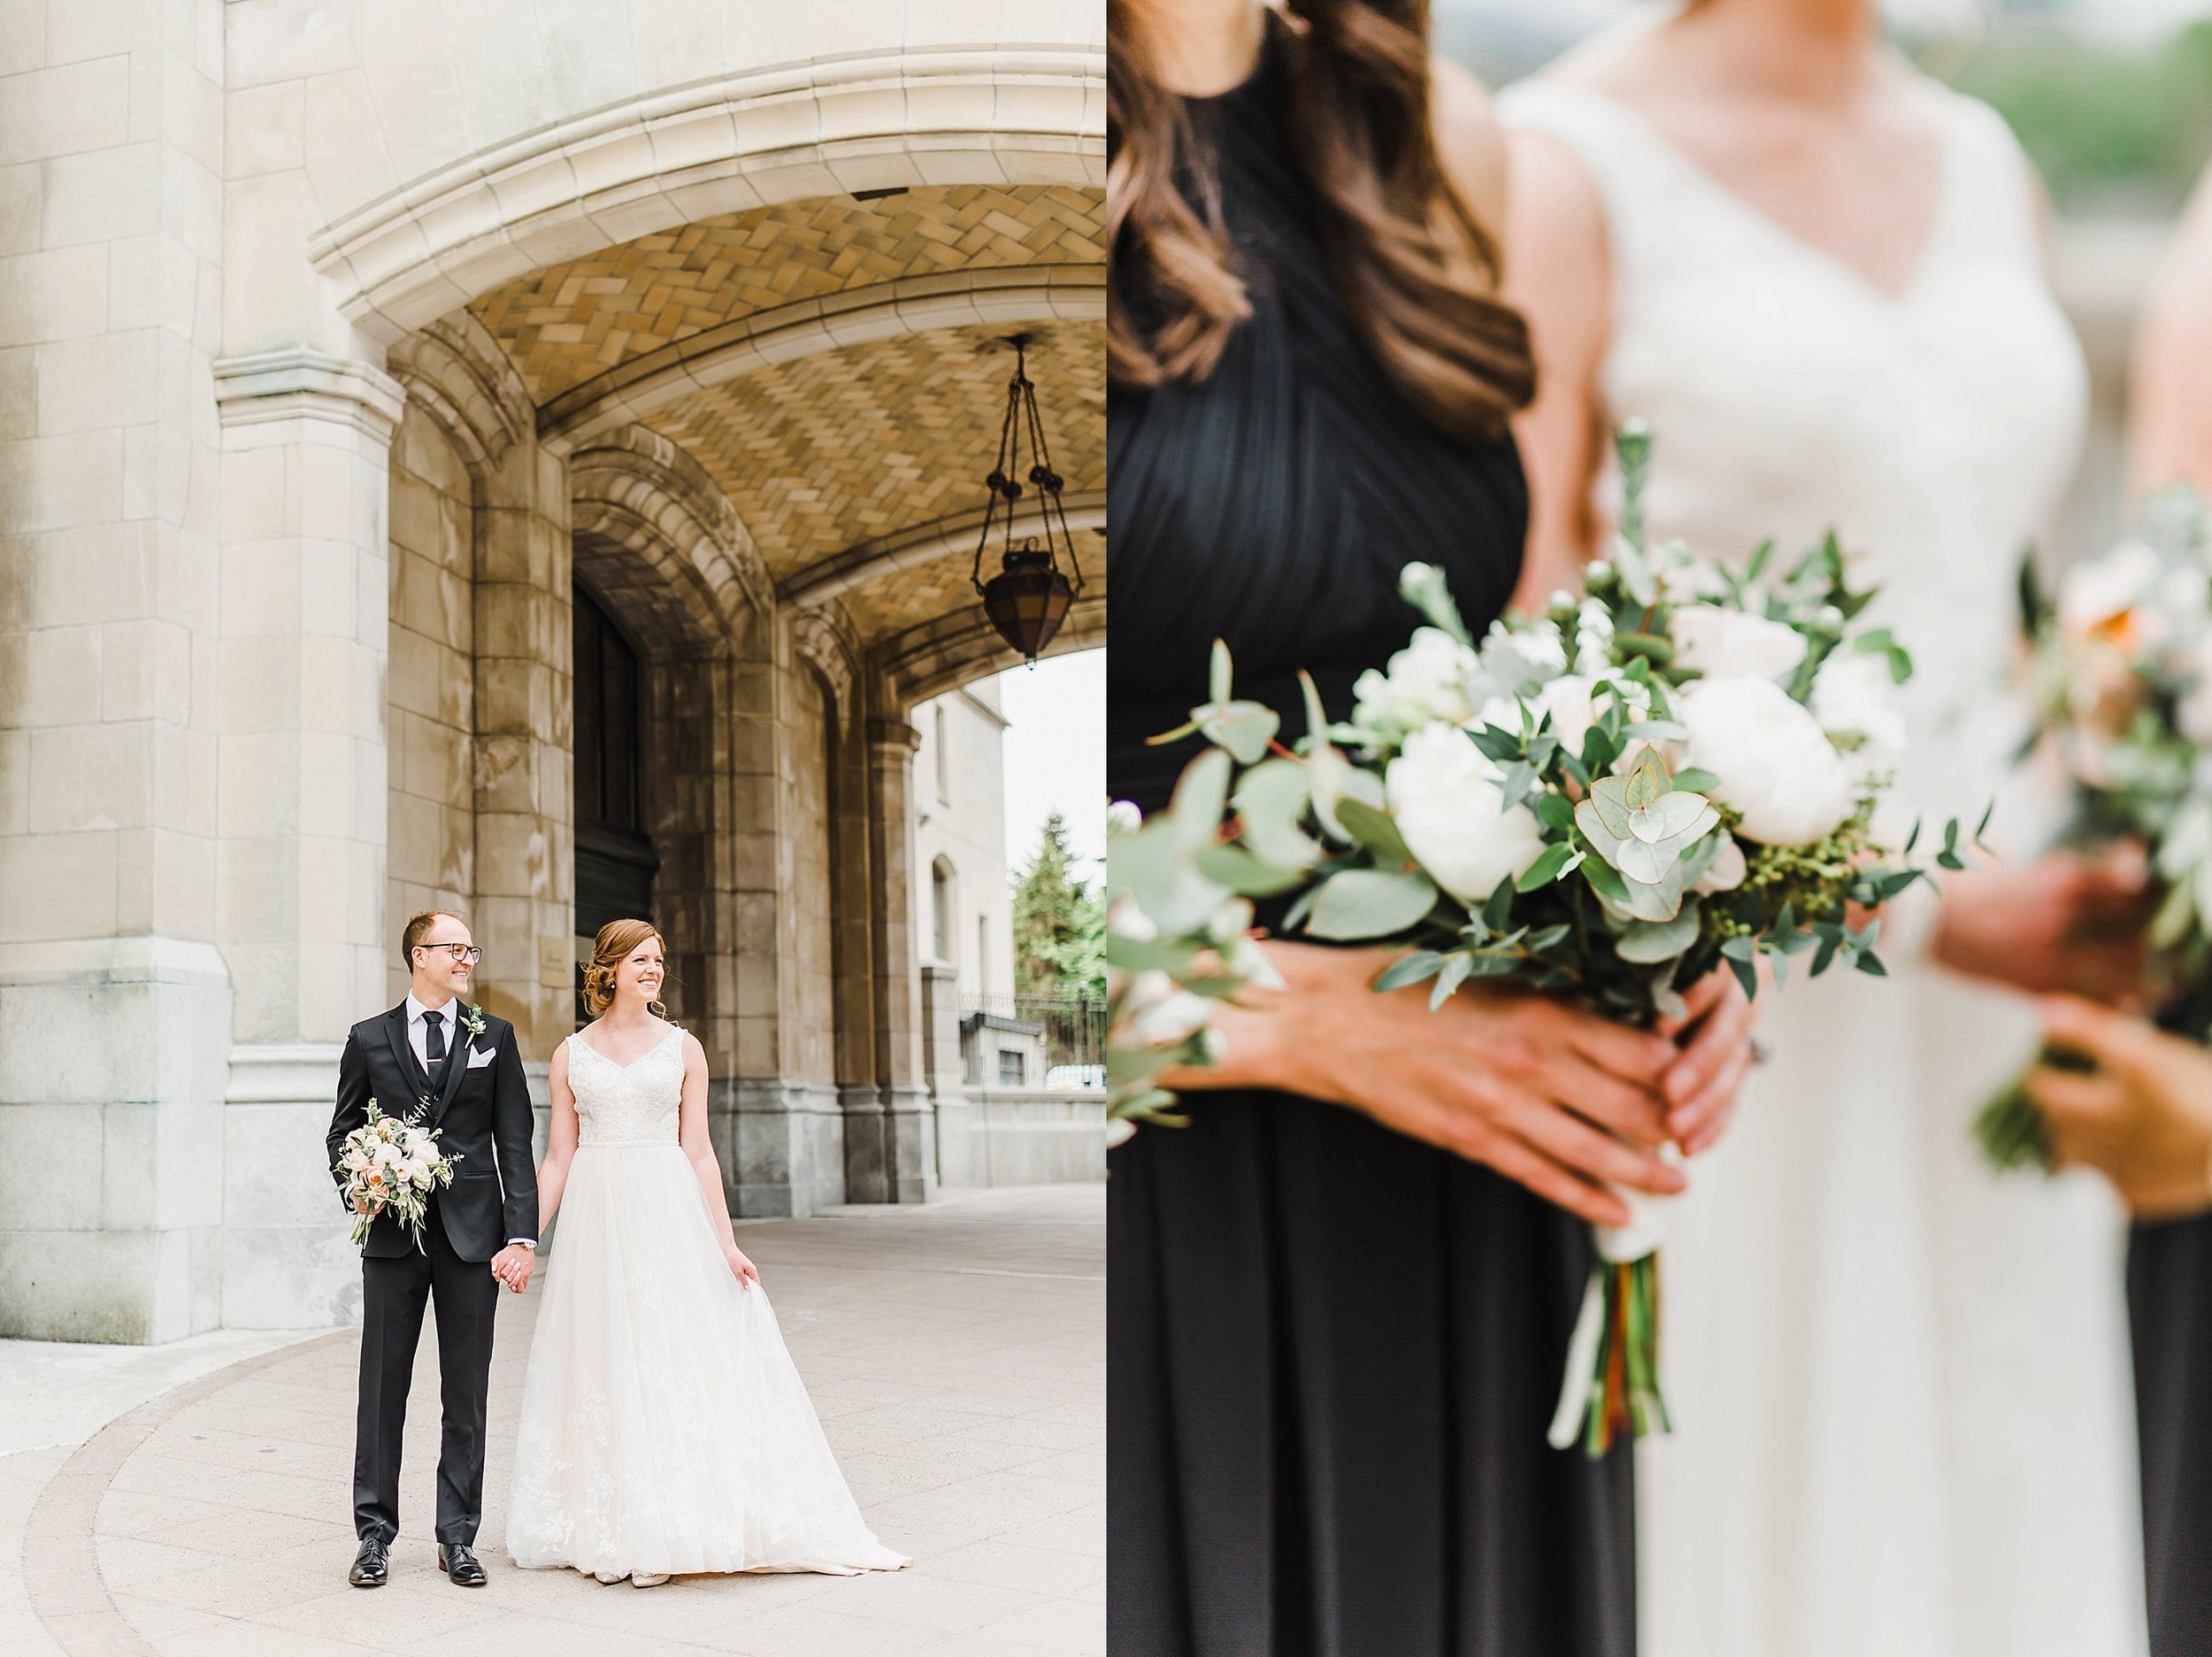 light airy indie fine art ottawa wedding photographer | Ali and Batoul Photography_0331.jpg